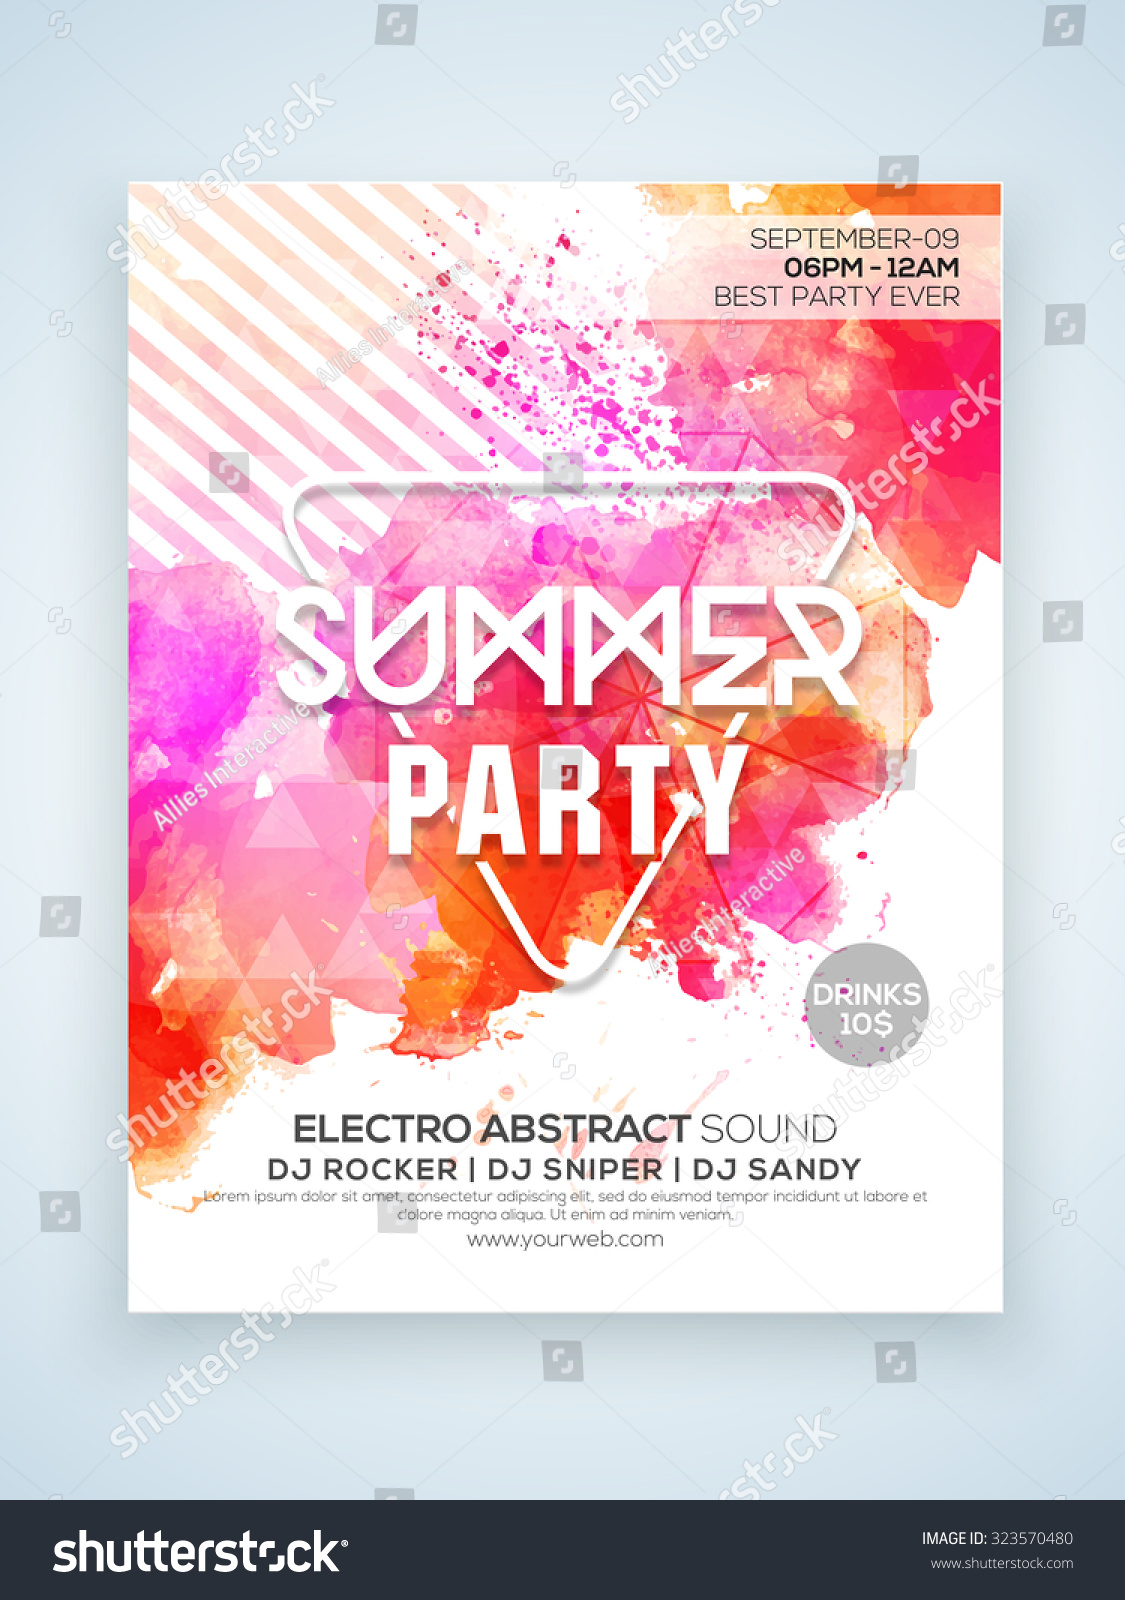 creative stylish summer party celebration one page flyer banner or